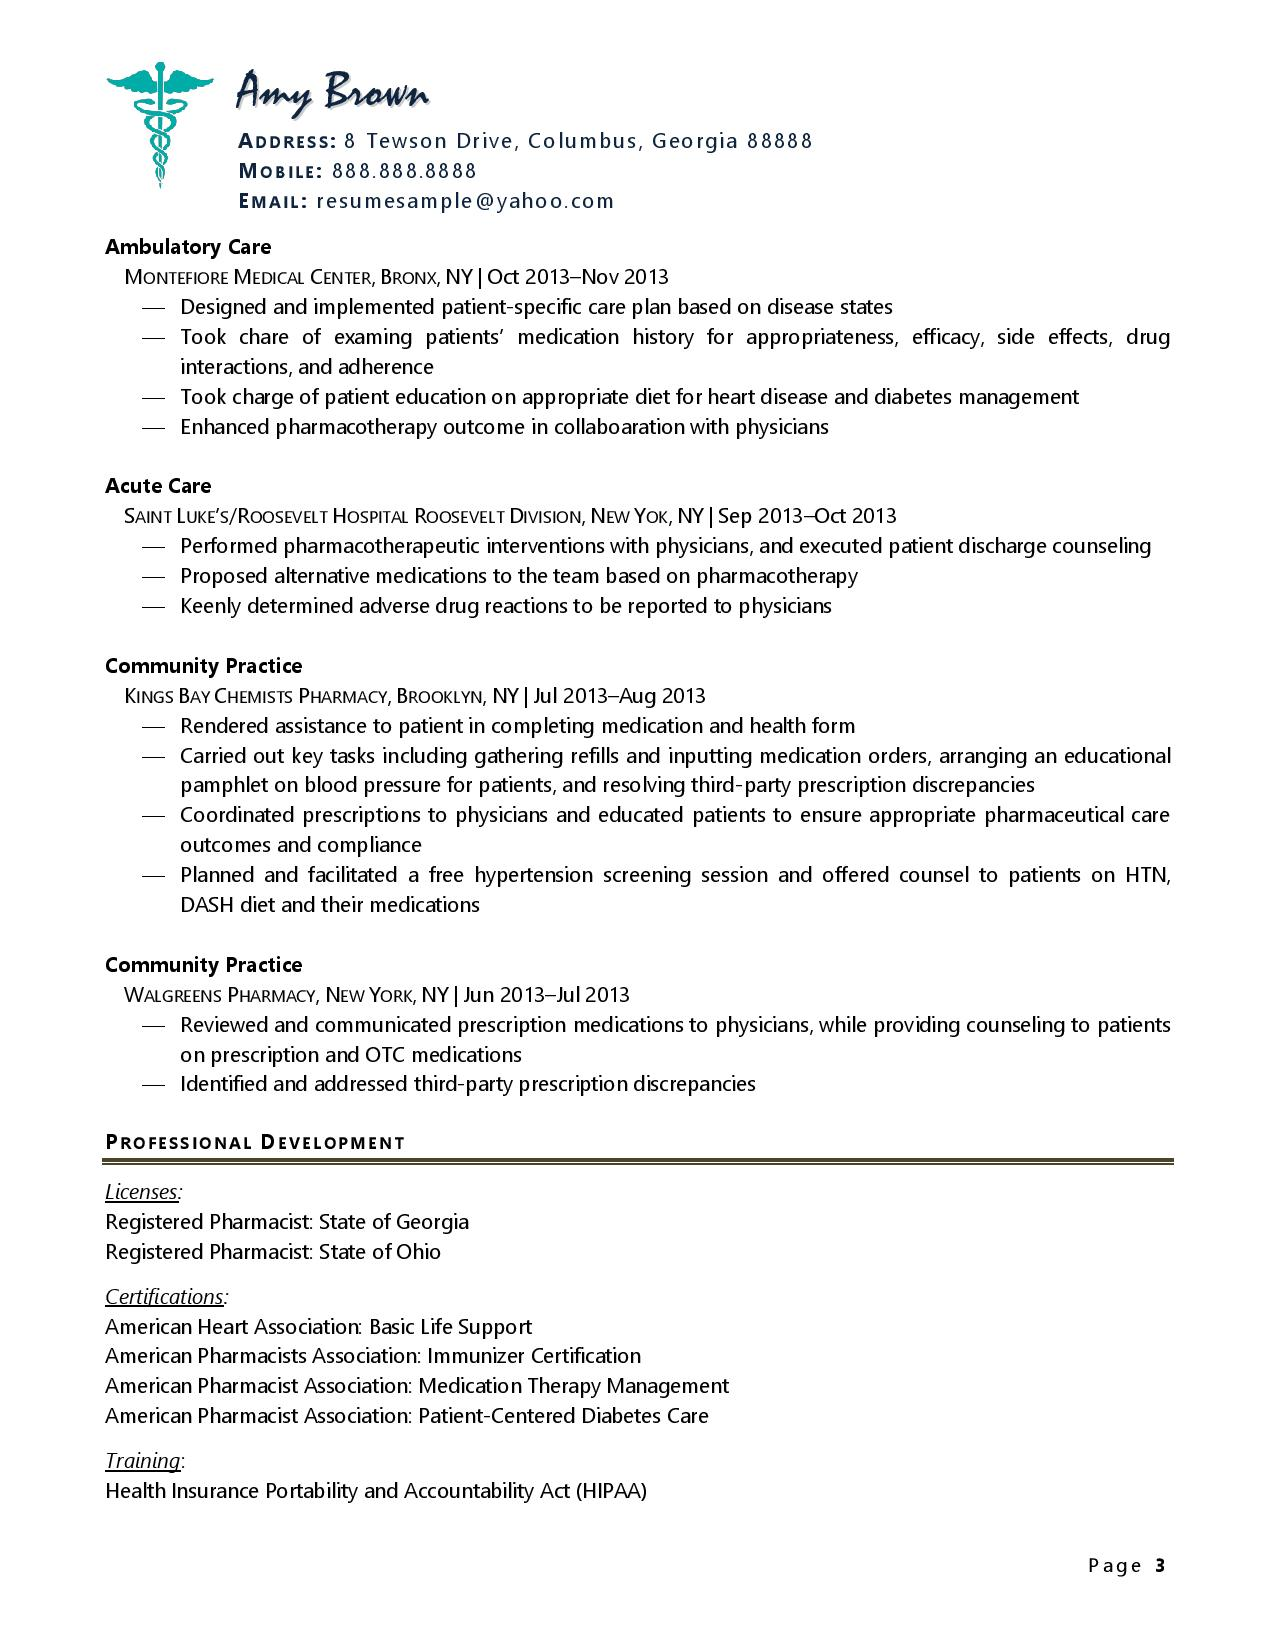 Page three of one of pharmacist resume examples